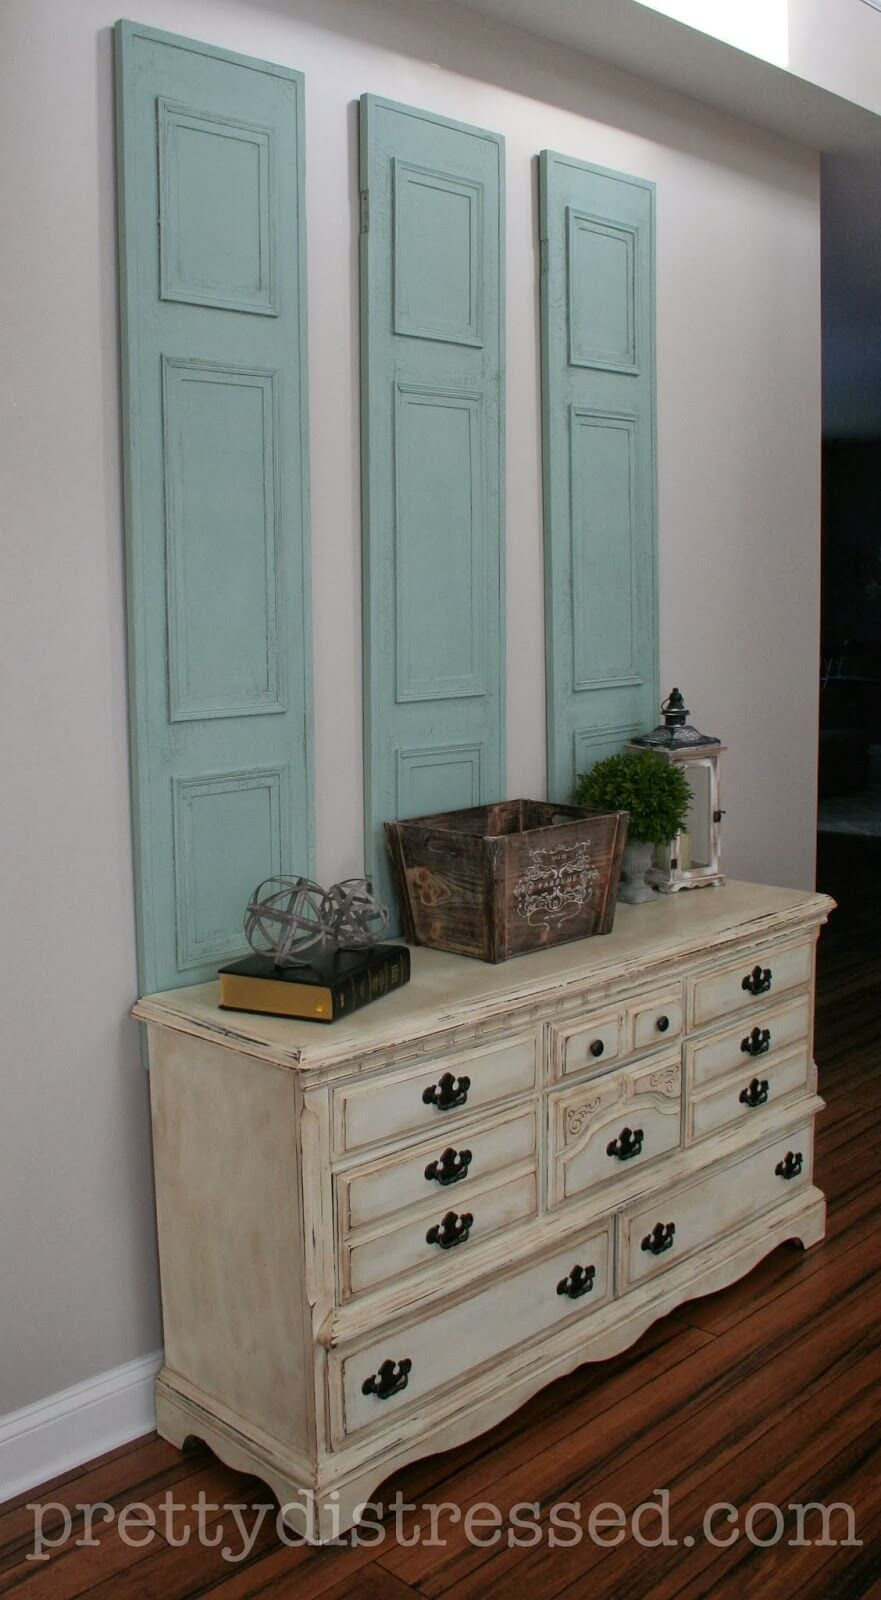 Upcycled Painted Privacy Screen Wall Décor